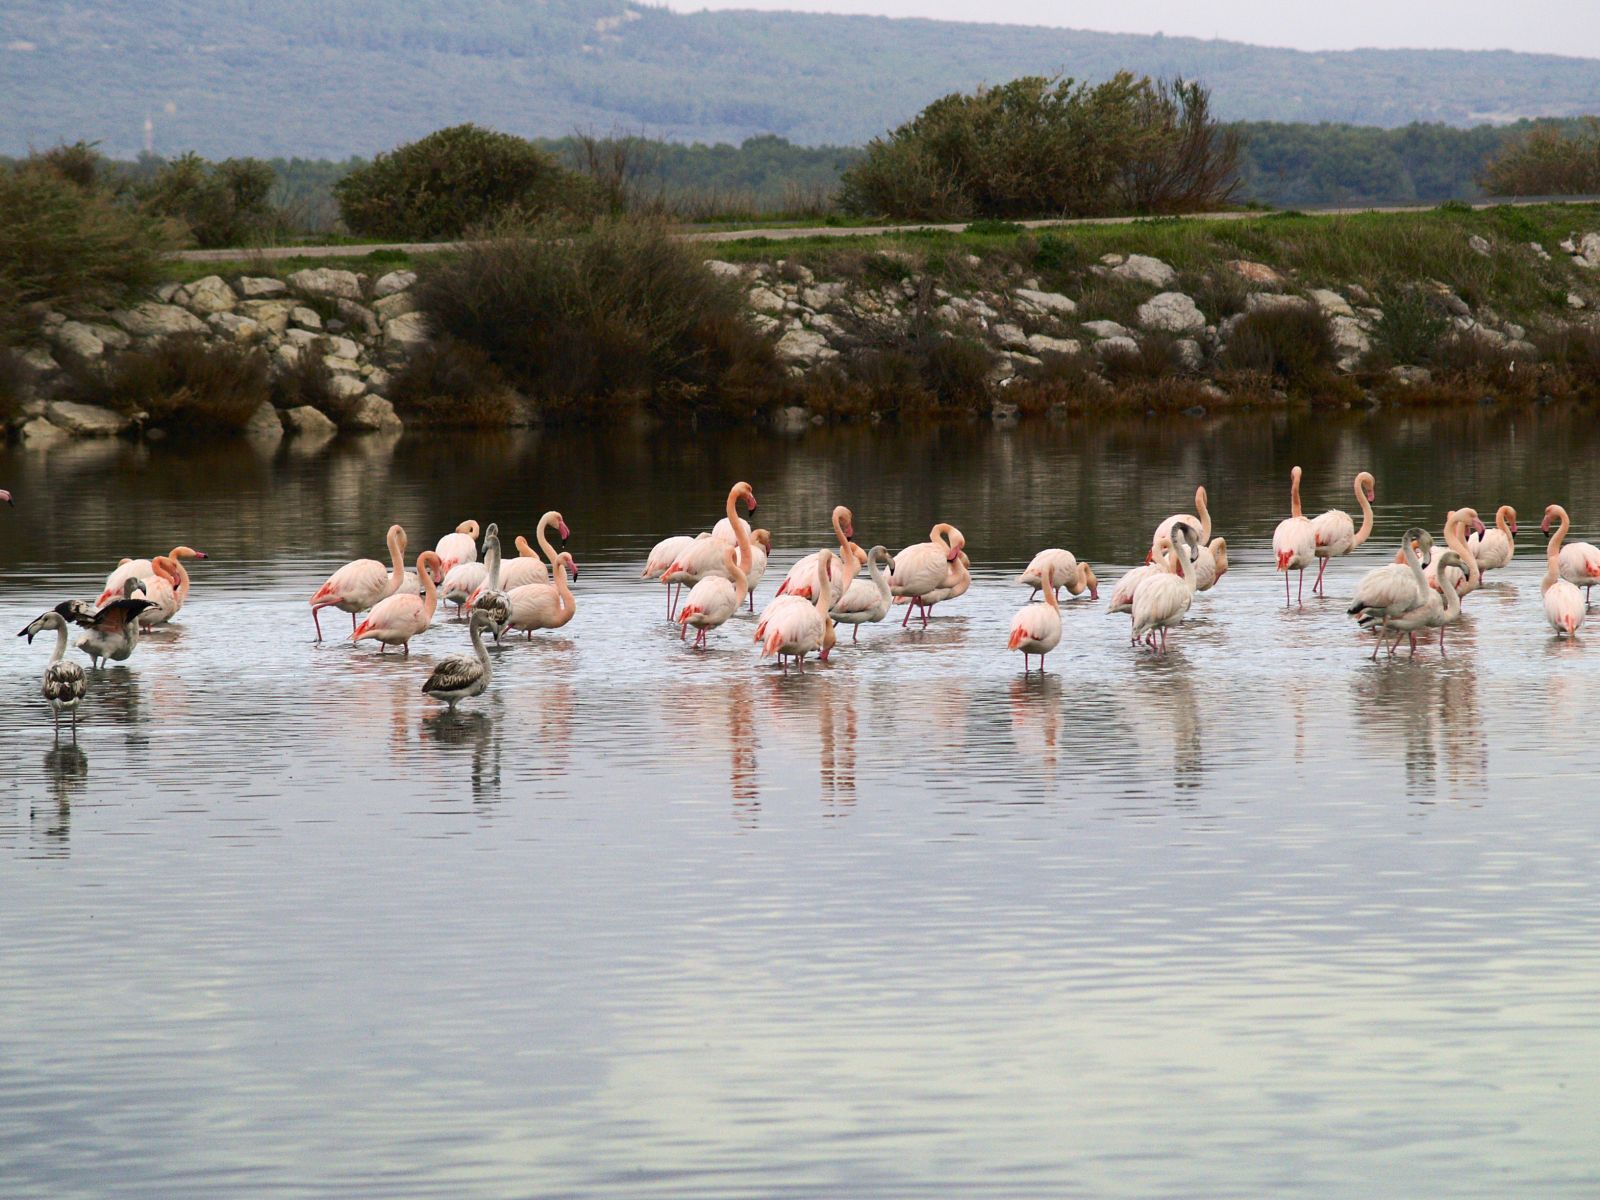 camargue flamants rose